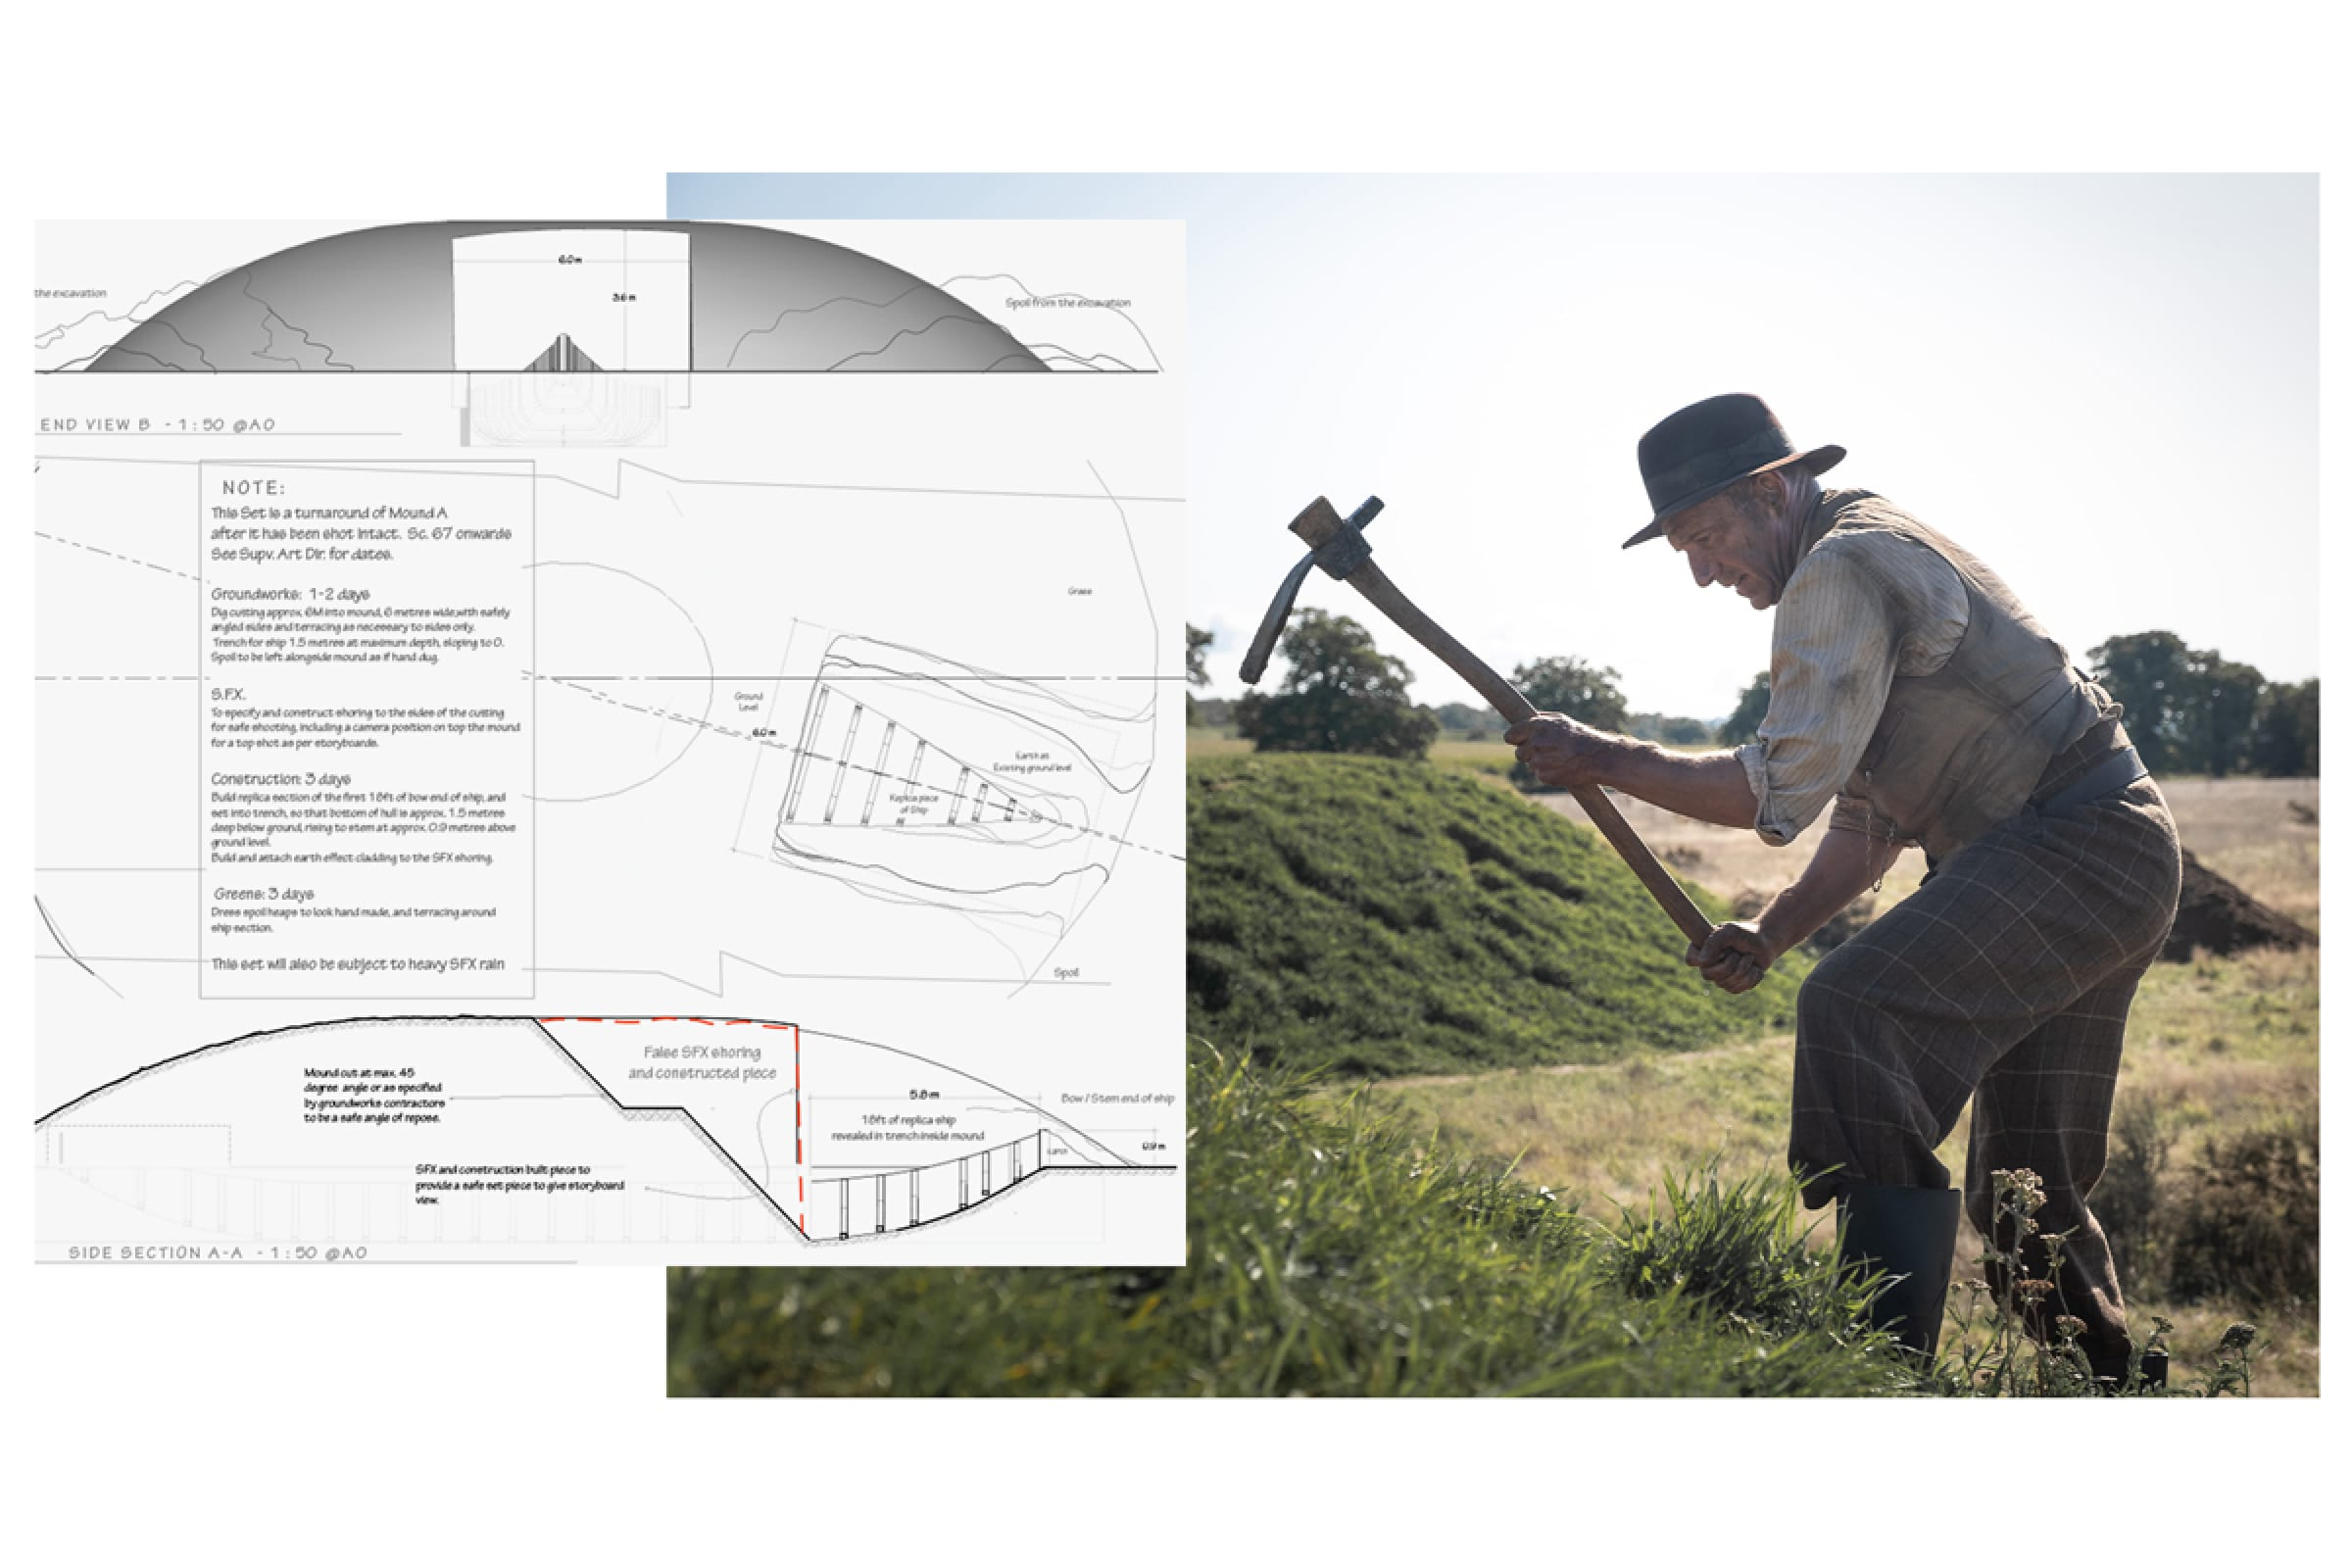 Basil Brown takes a pickaxe to one of the ancient burial mounds in a still from the film. A production sketch shows a map of the digsite.